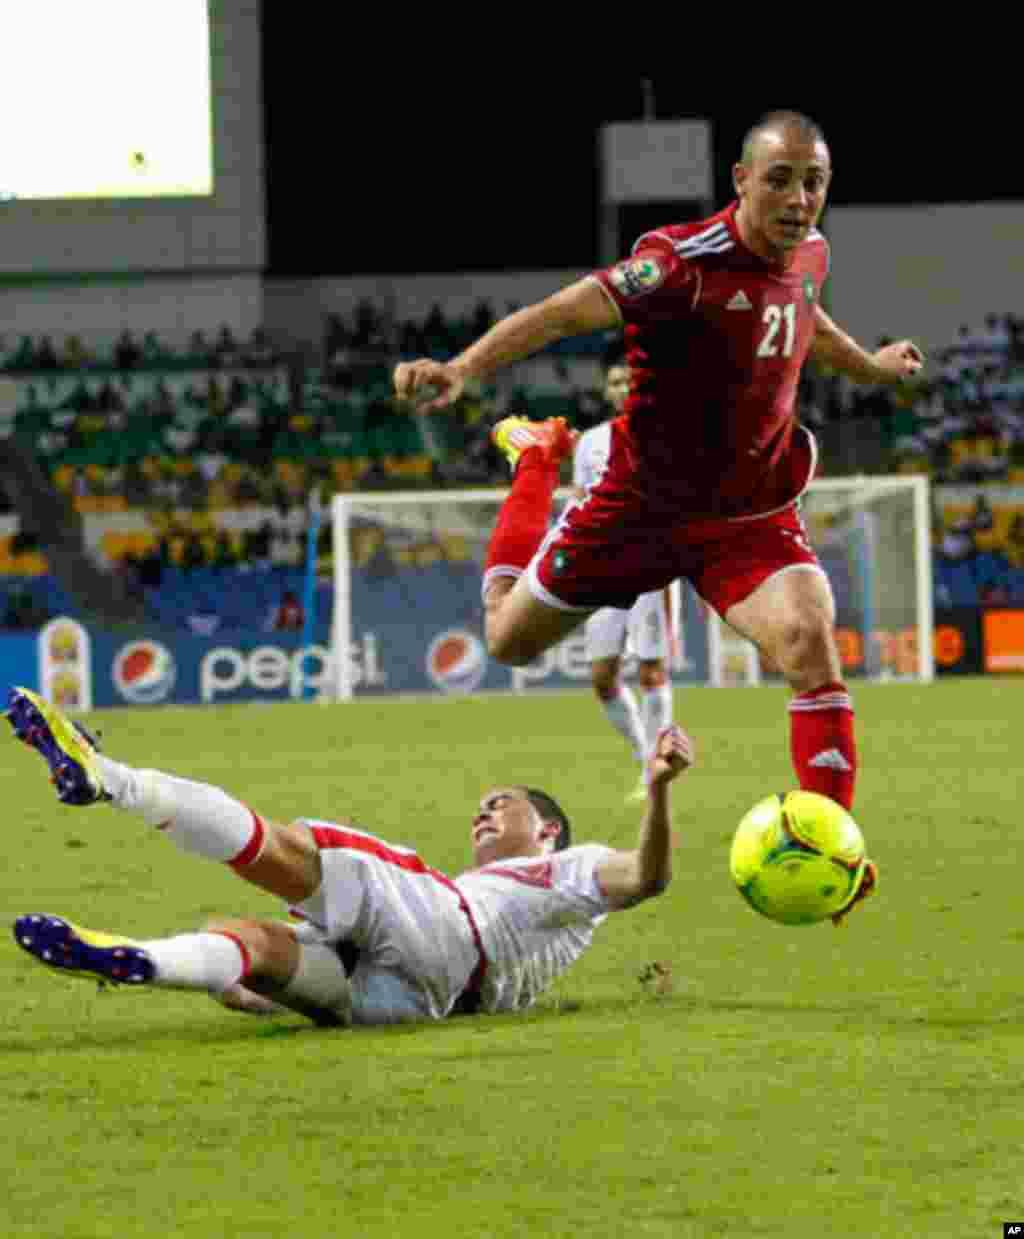 Morocco's Noureddine drives the ball over Tunisia's Ammar during their African Cup of Nations soccer match in Libreville